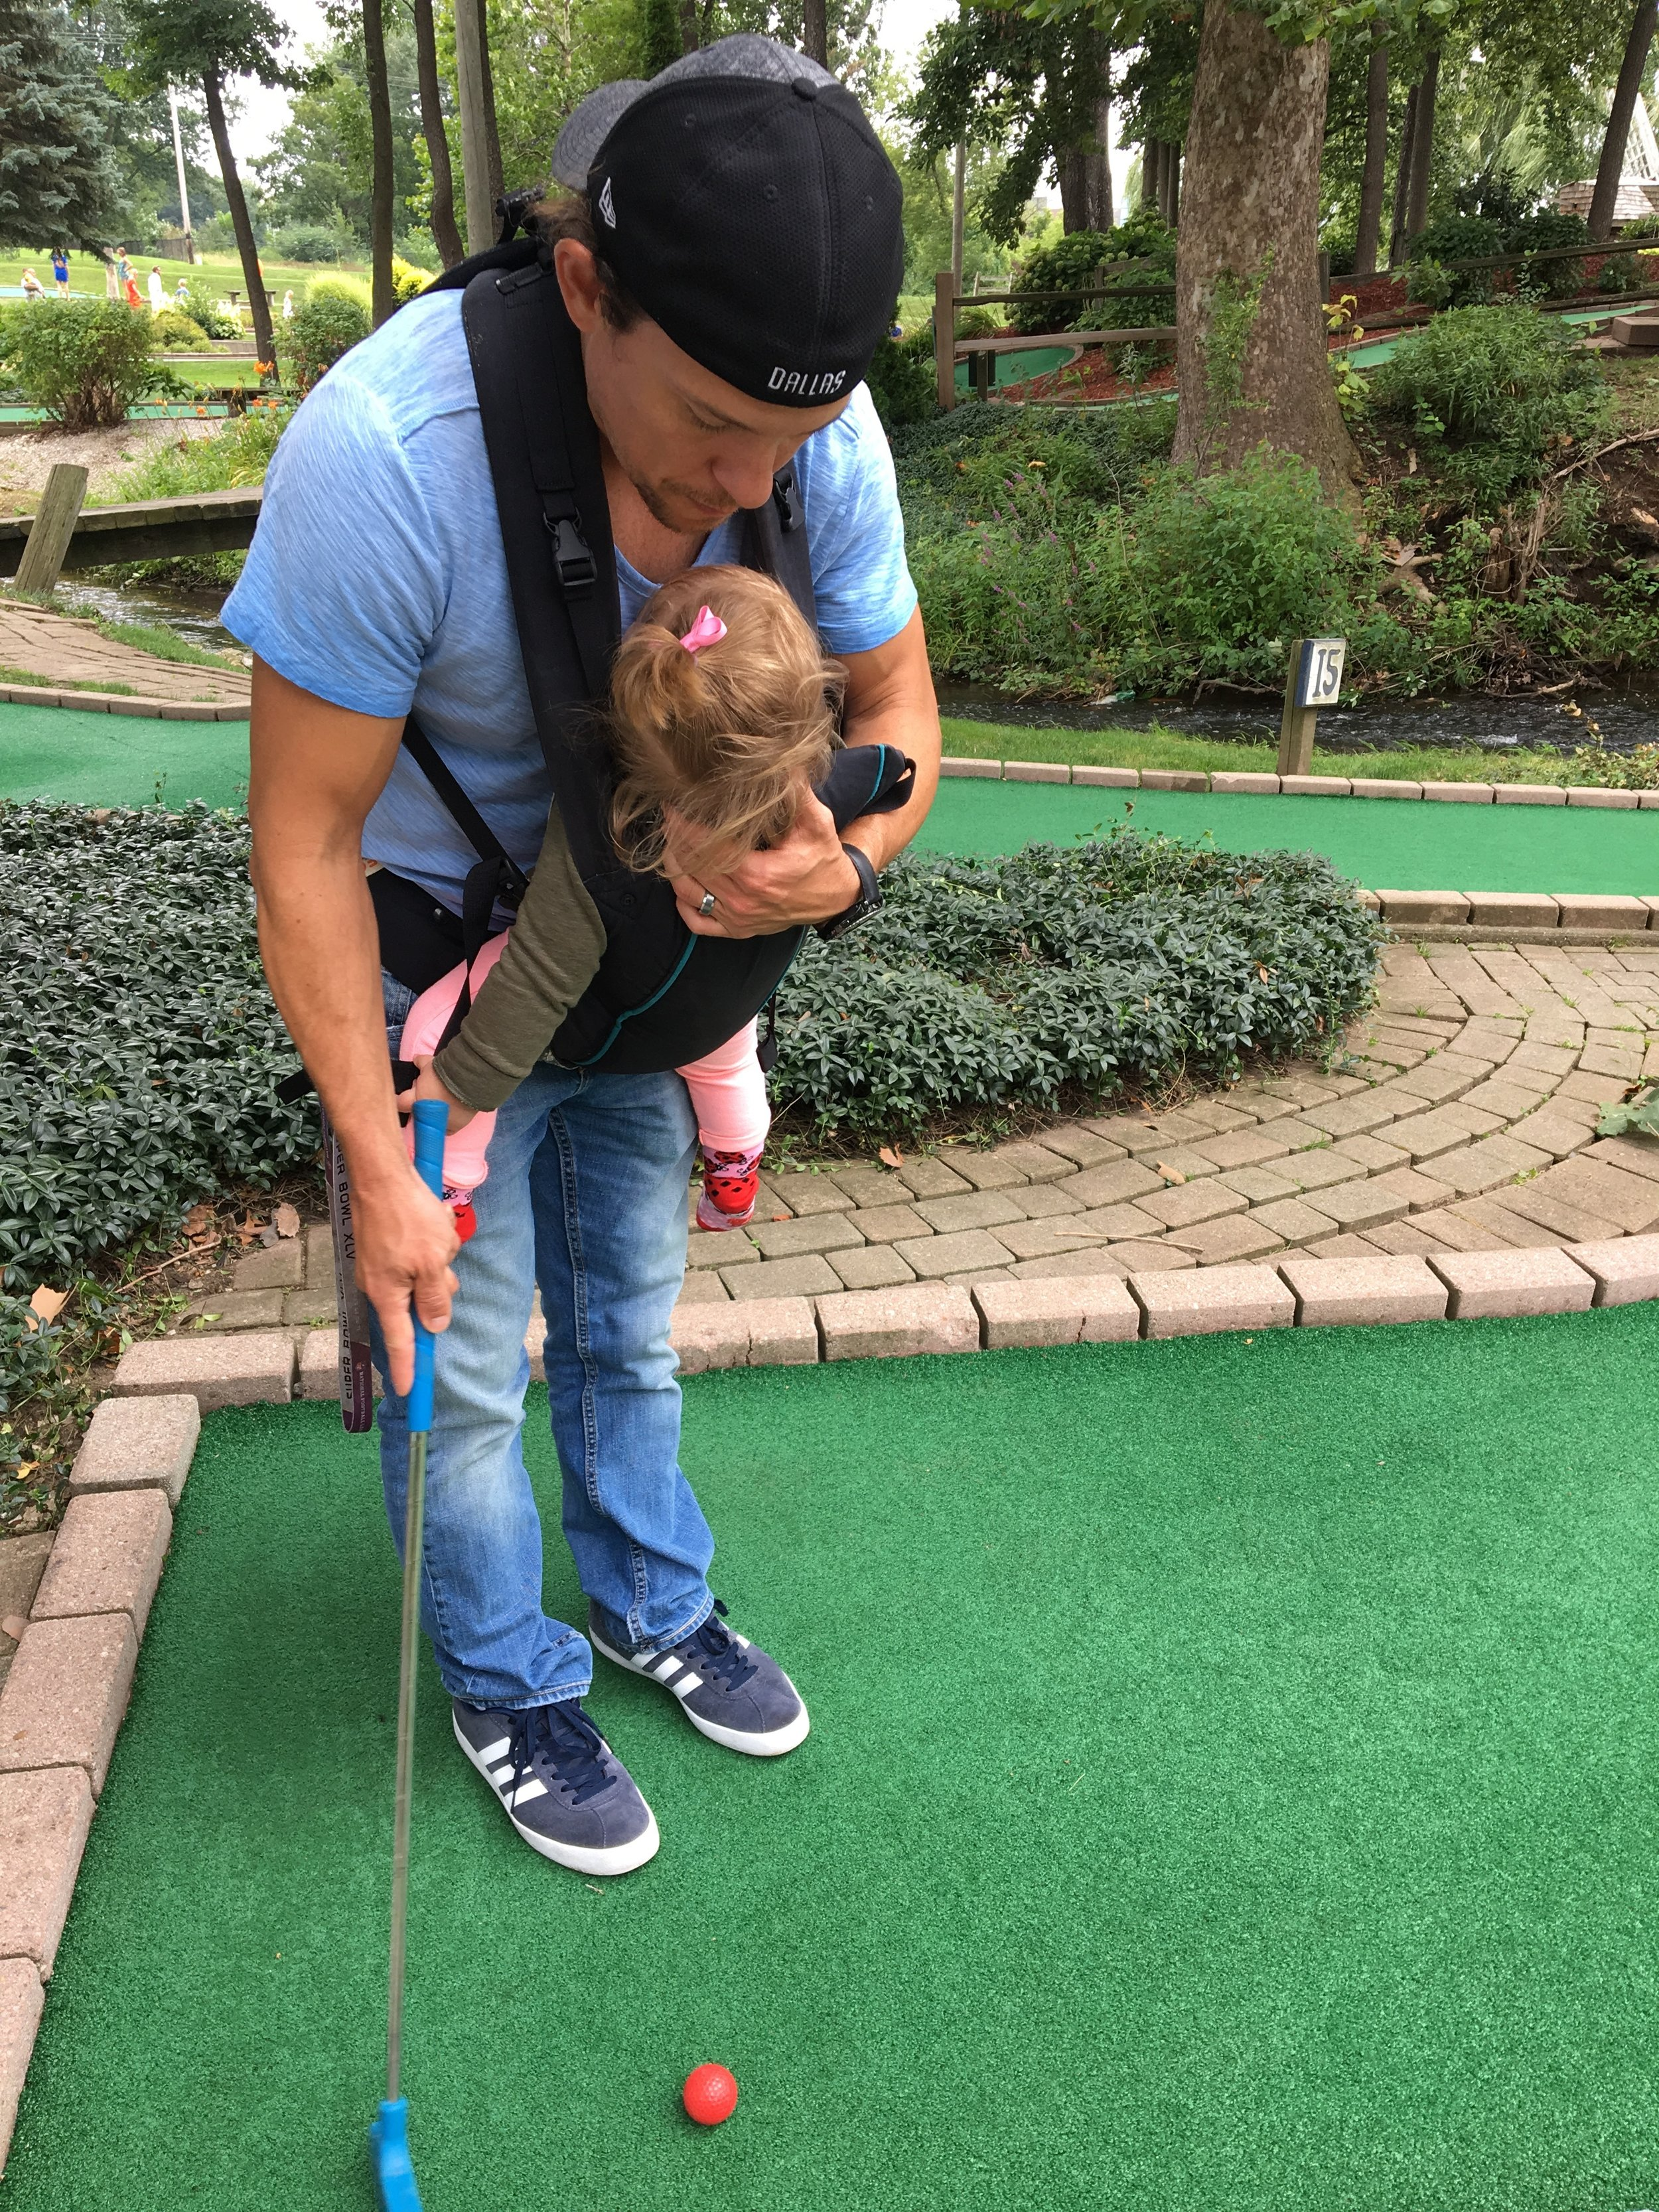 King of making-it-work, seen here wearing Adelaide during a round of mini golf 2 yrs ago that was not accessible. August, 2017